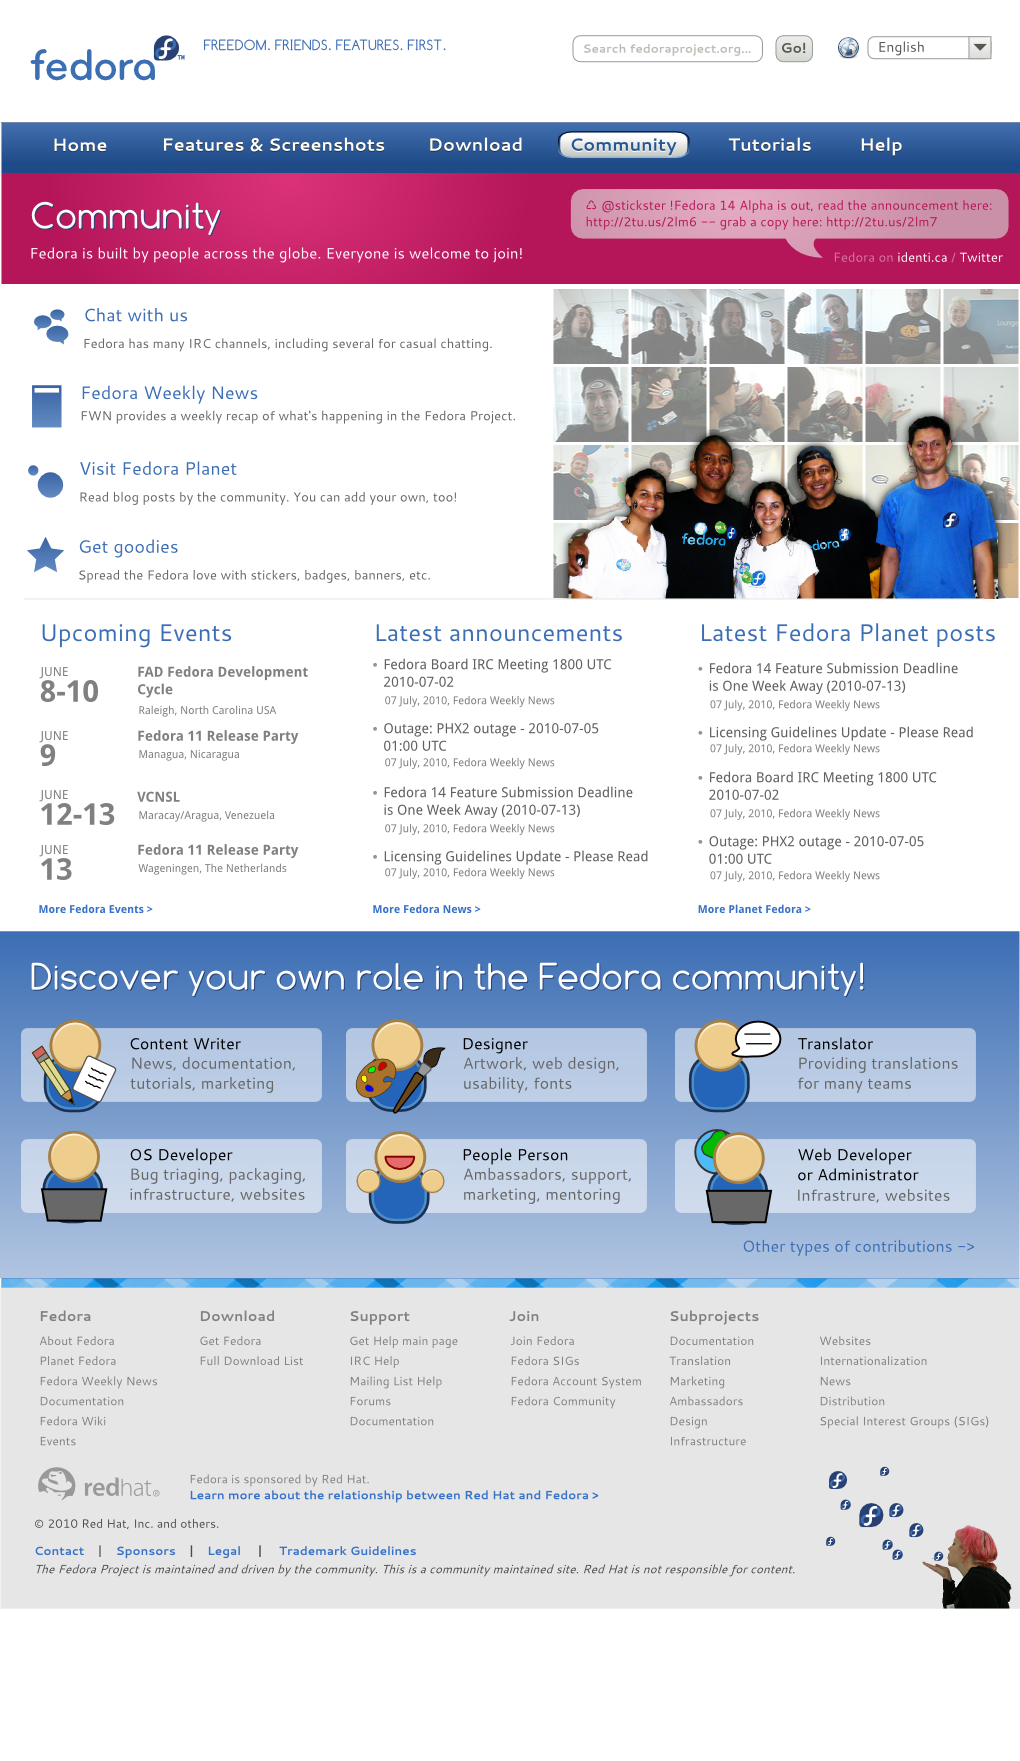 Wwwfpo-redesign-2010 7-community.png